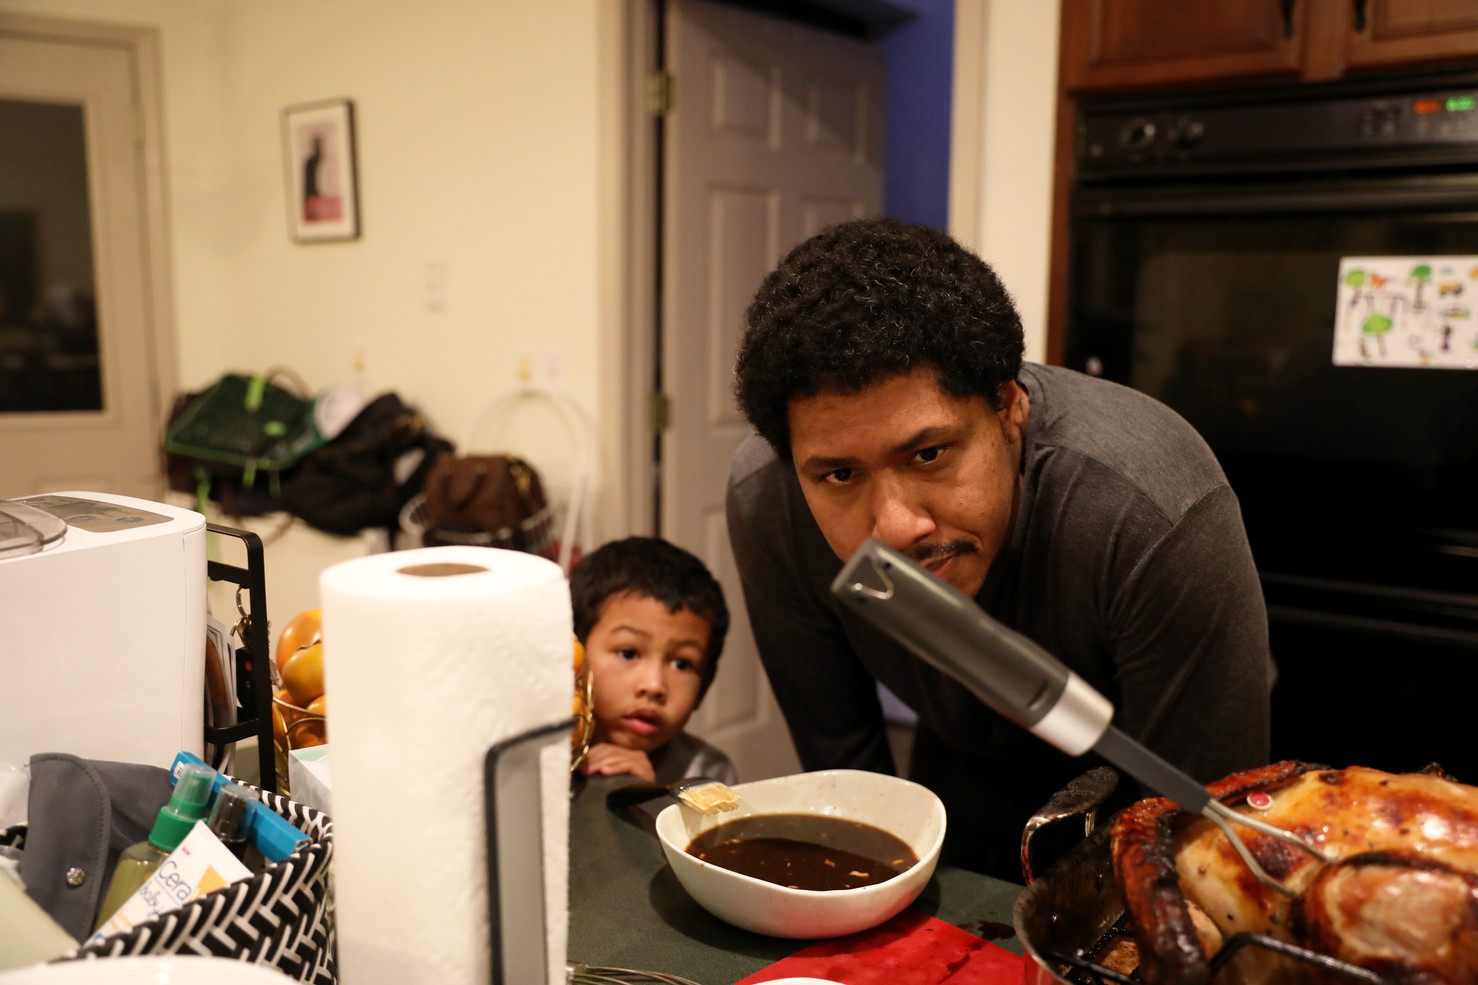 Arthur Fulcher and Brandon look at a meat cooking thermometer inserted into Thanksgiving turkey on Thursday, November 28, 2019 in Columbia, Missouri. Brandon's mother and brother, Joanne and Bryan, come to their house and celebrate Thanksgiving which is the most important holiday for them.